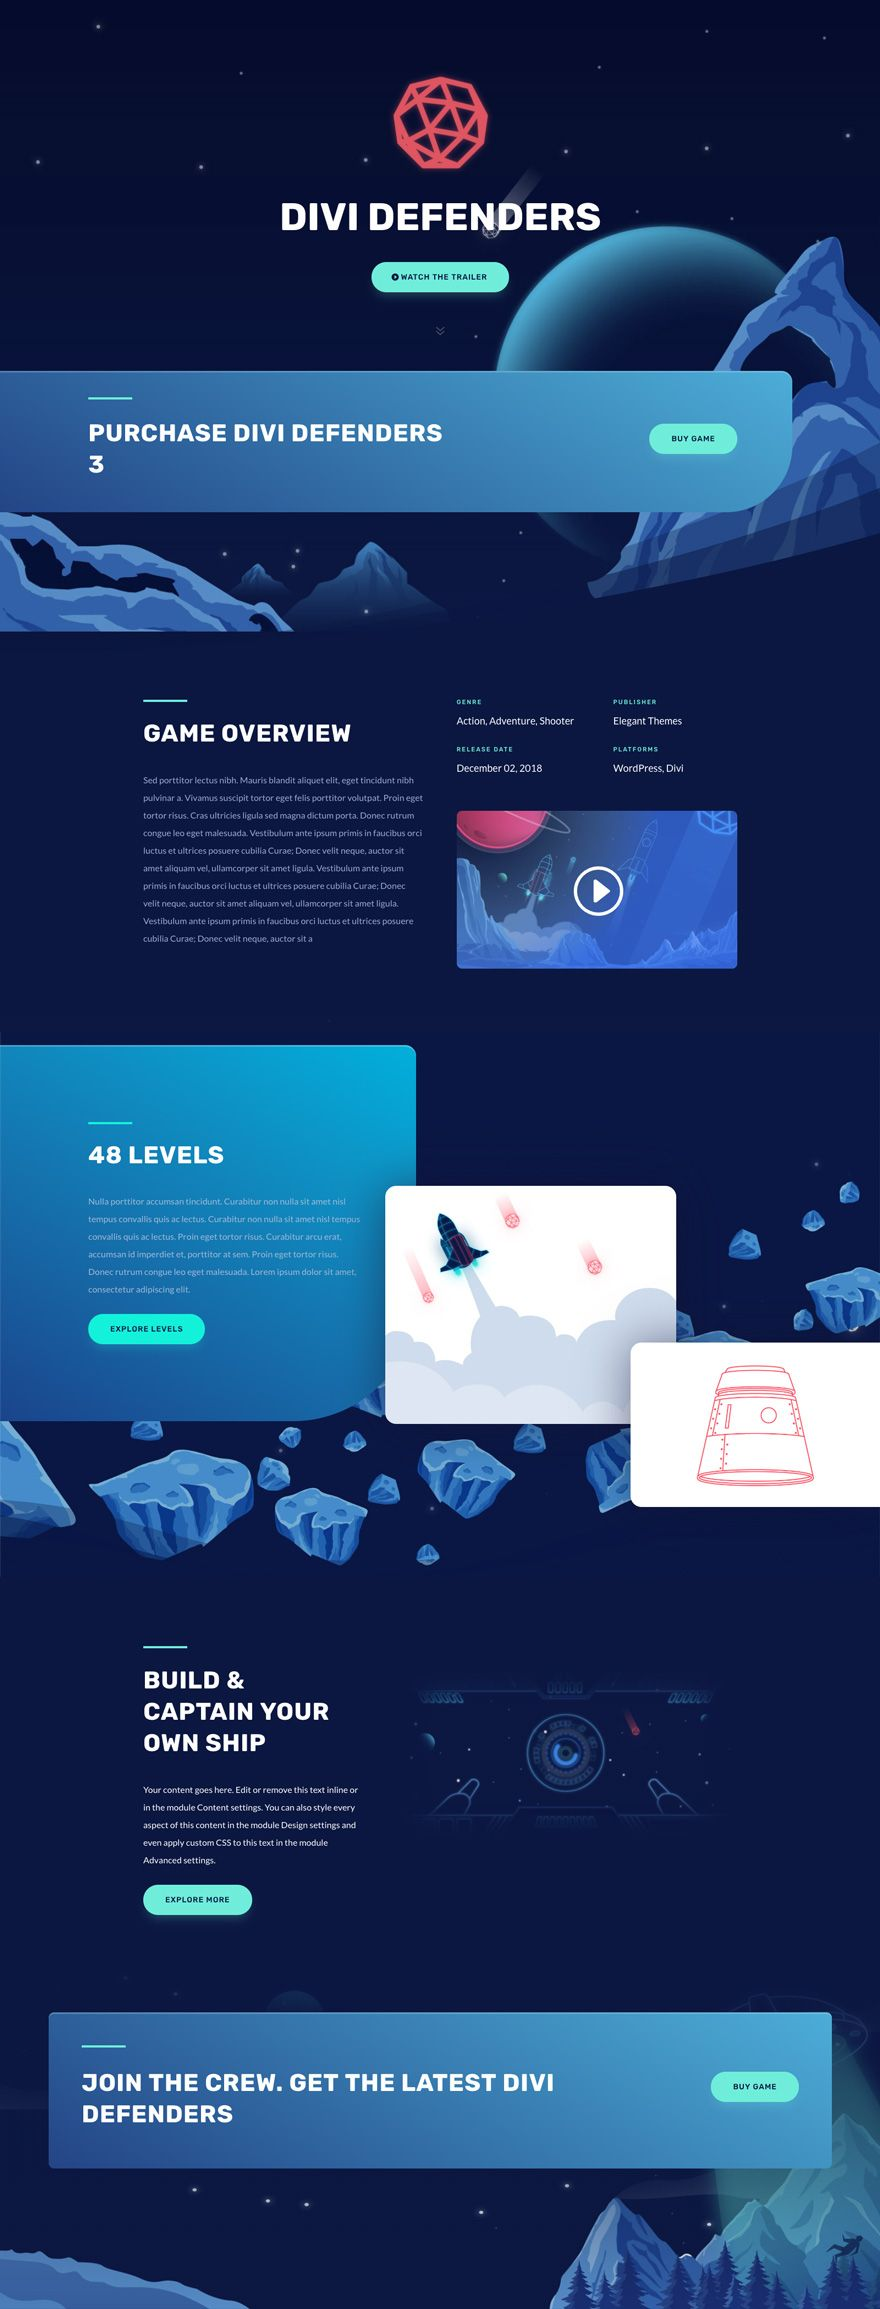 Creative Gradient One Page Web Design Inspiration | Free Layout for Video Game Website WP Template